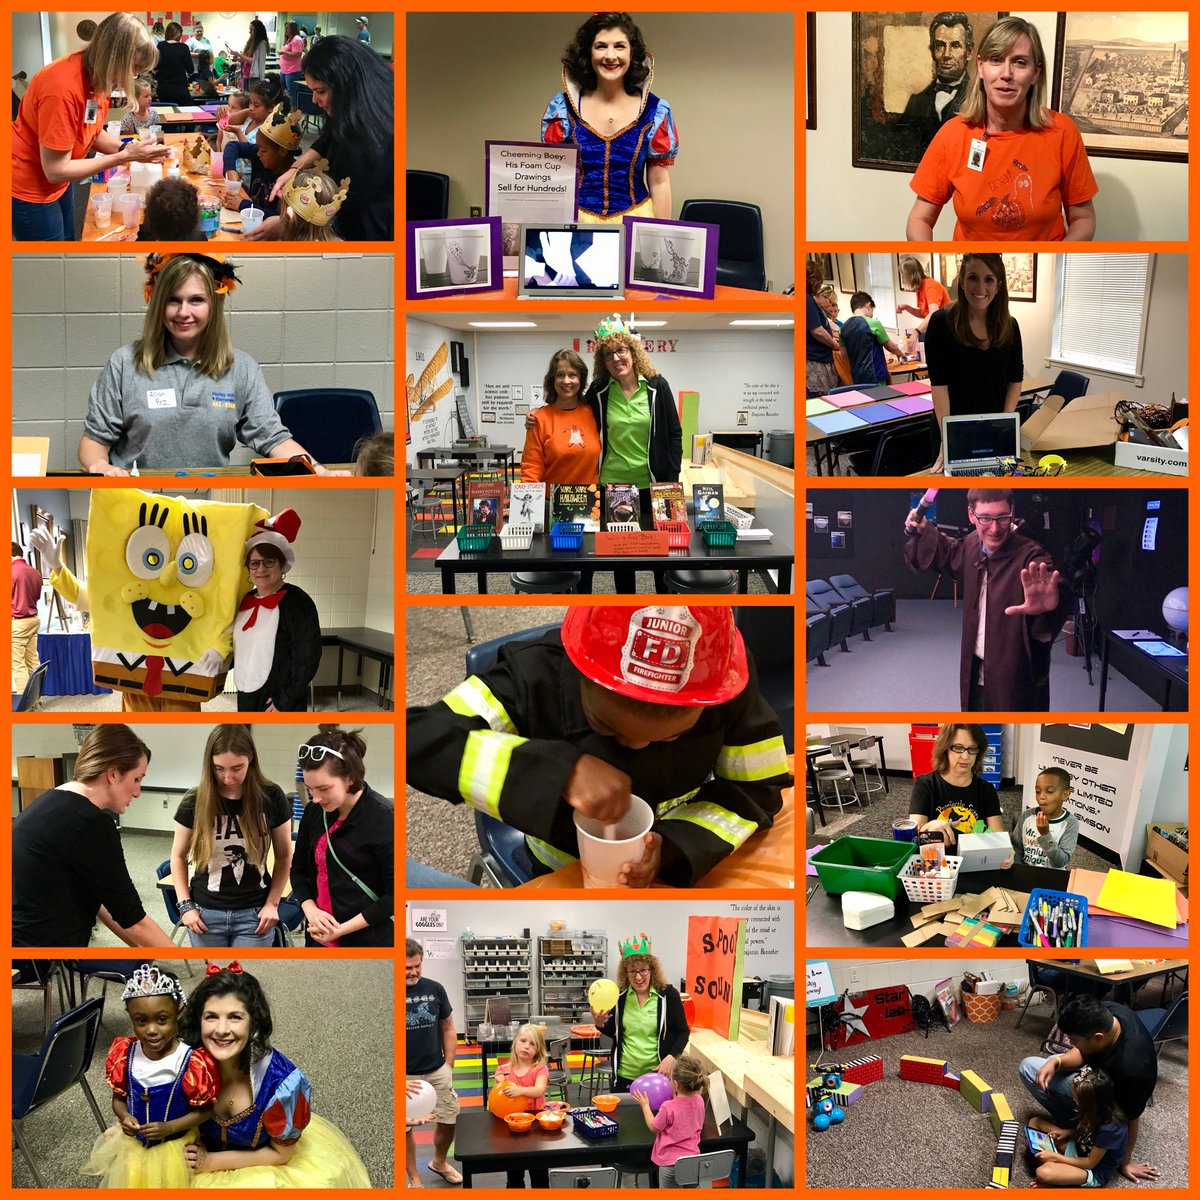 Great day @RSSHorizons for the October Public Opening and making with some @RSSinformation media coordinators.  #rssmedia #collaborate #make <br>http://pic.twitter.com/Q9eDQeKbDP